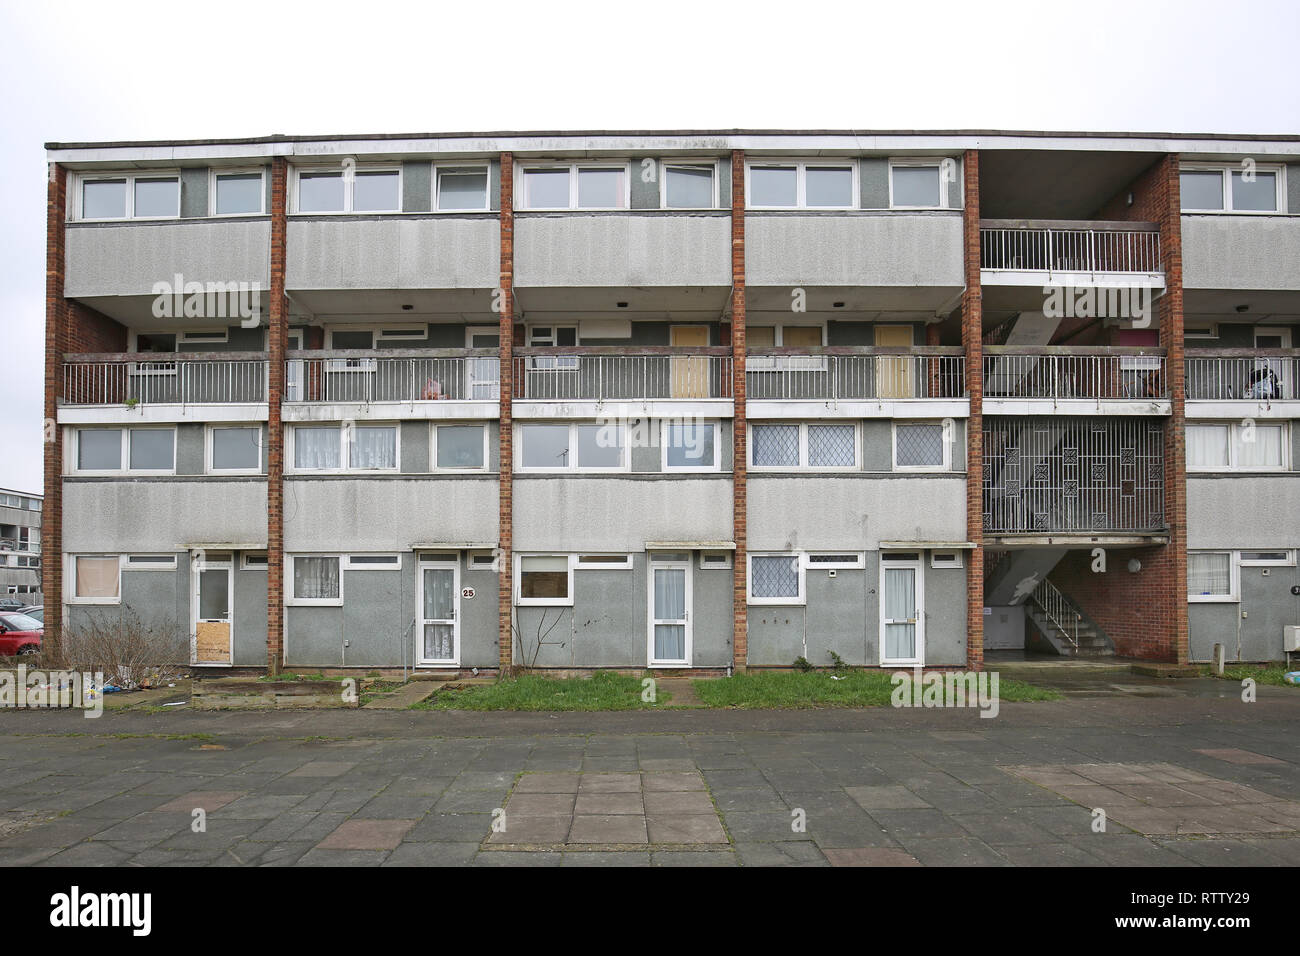 A run-down, four storey block of council maisononets in Basildon, Essex, UK. Flats still occupied but scheduled for demolition. - Stock Image